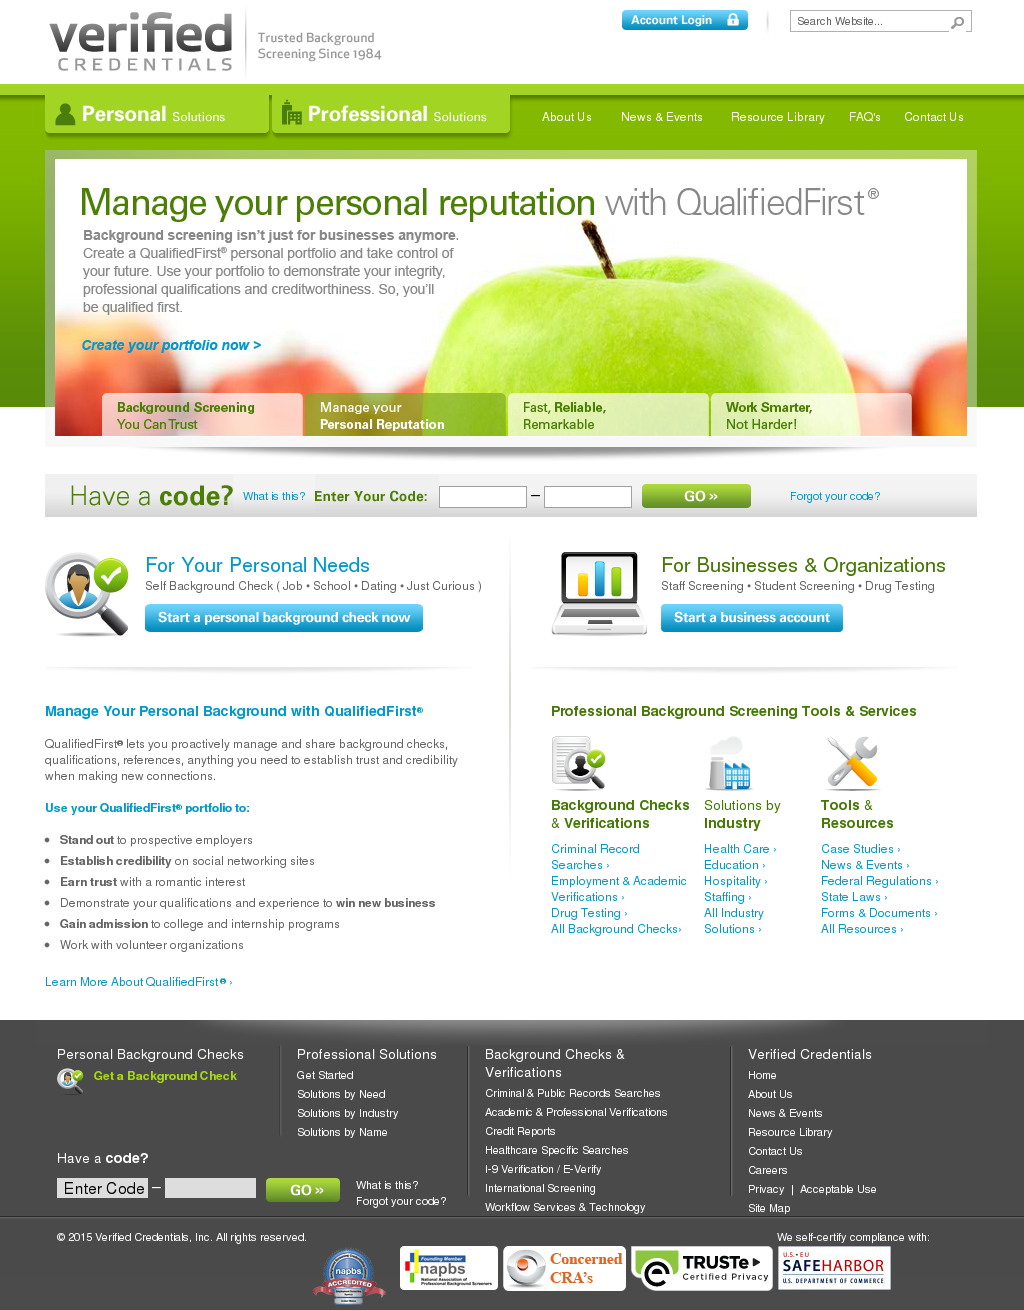 Verified Credentials Competitors, Revenue and Employees - Owler